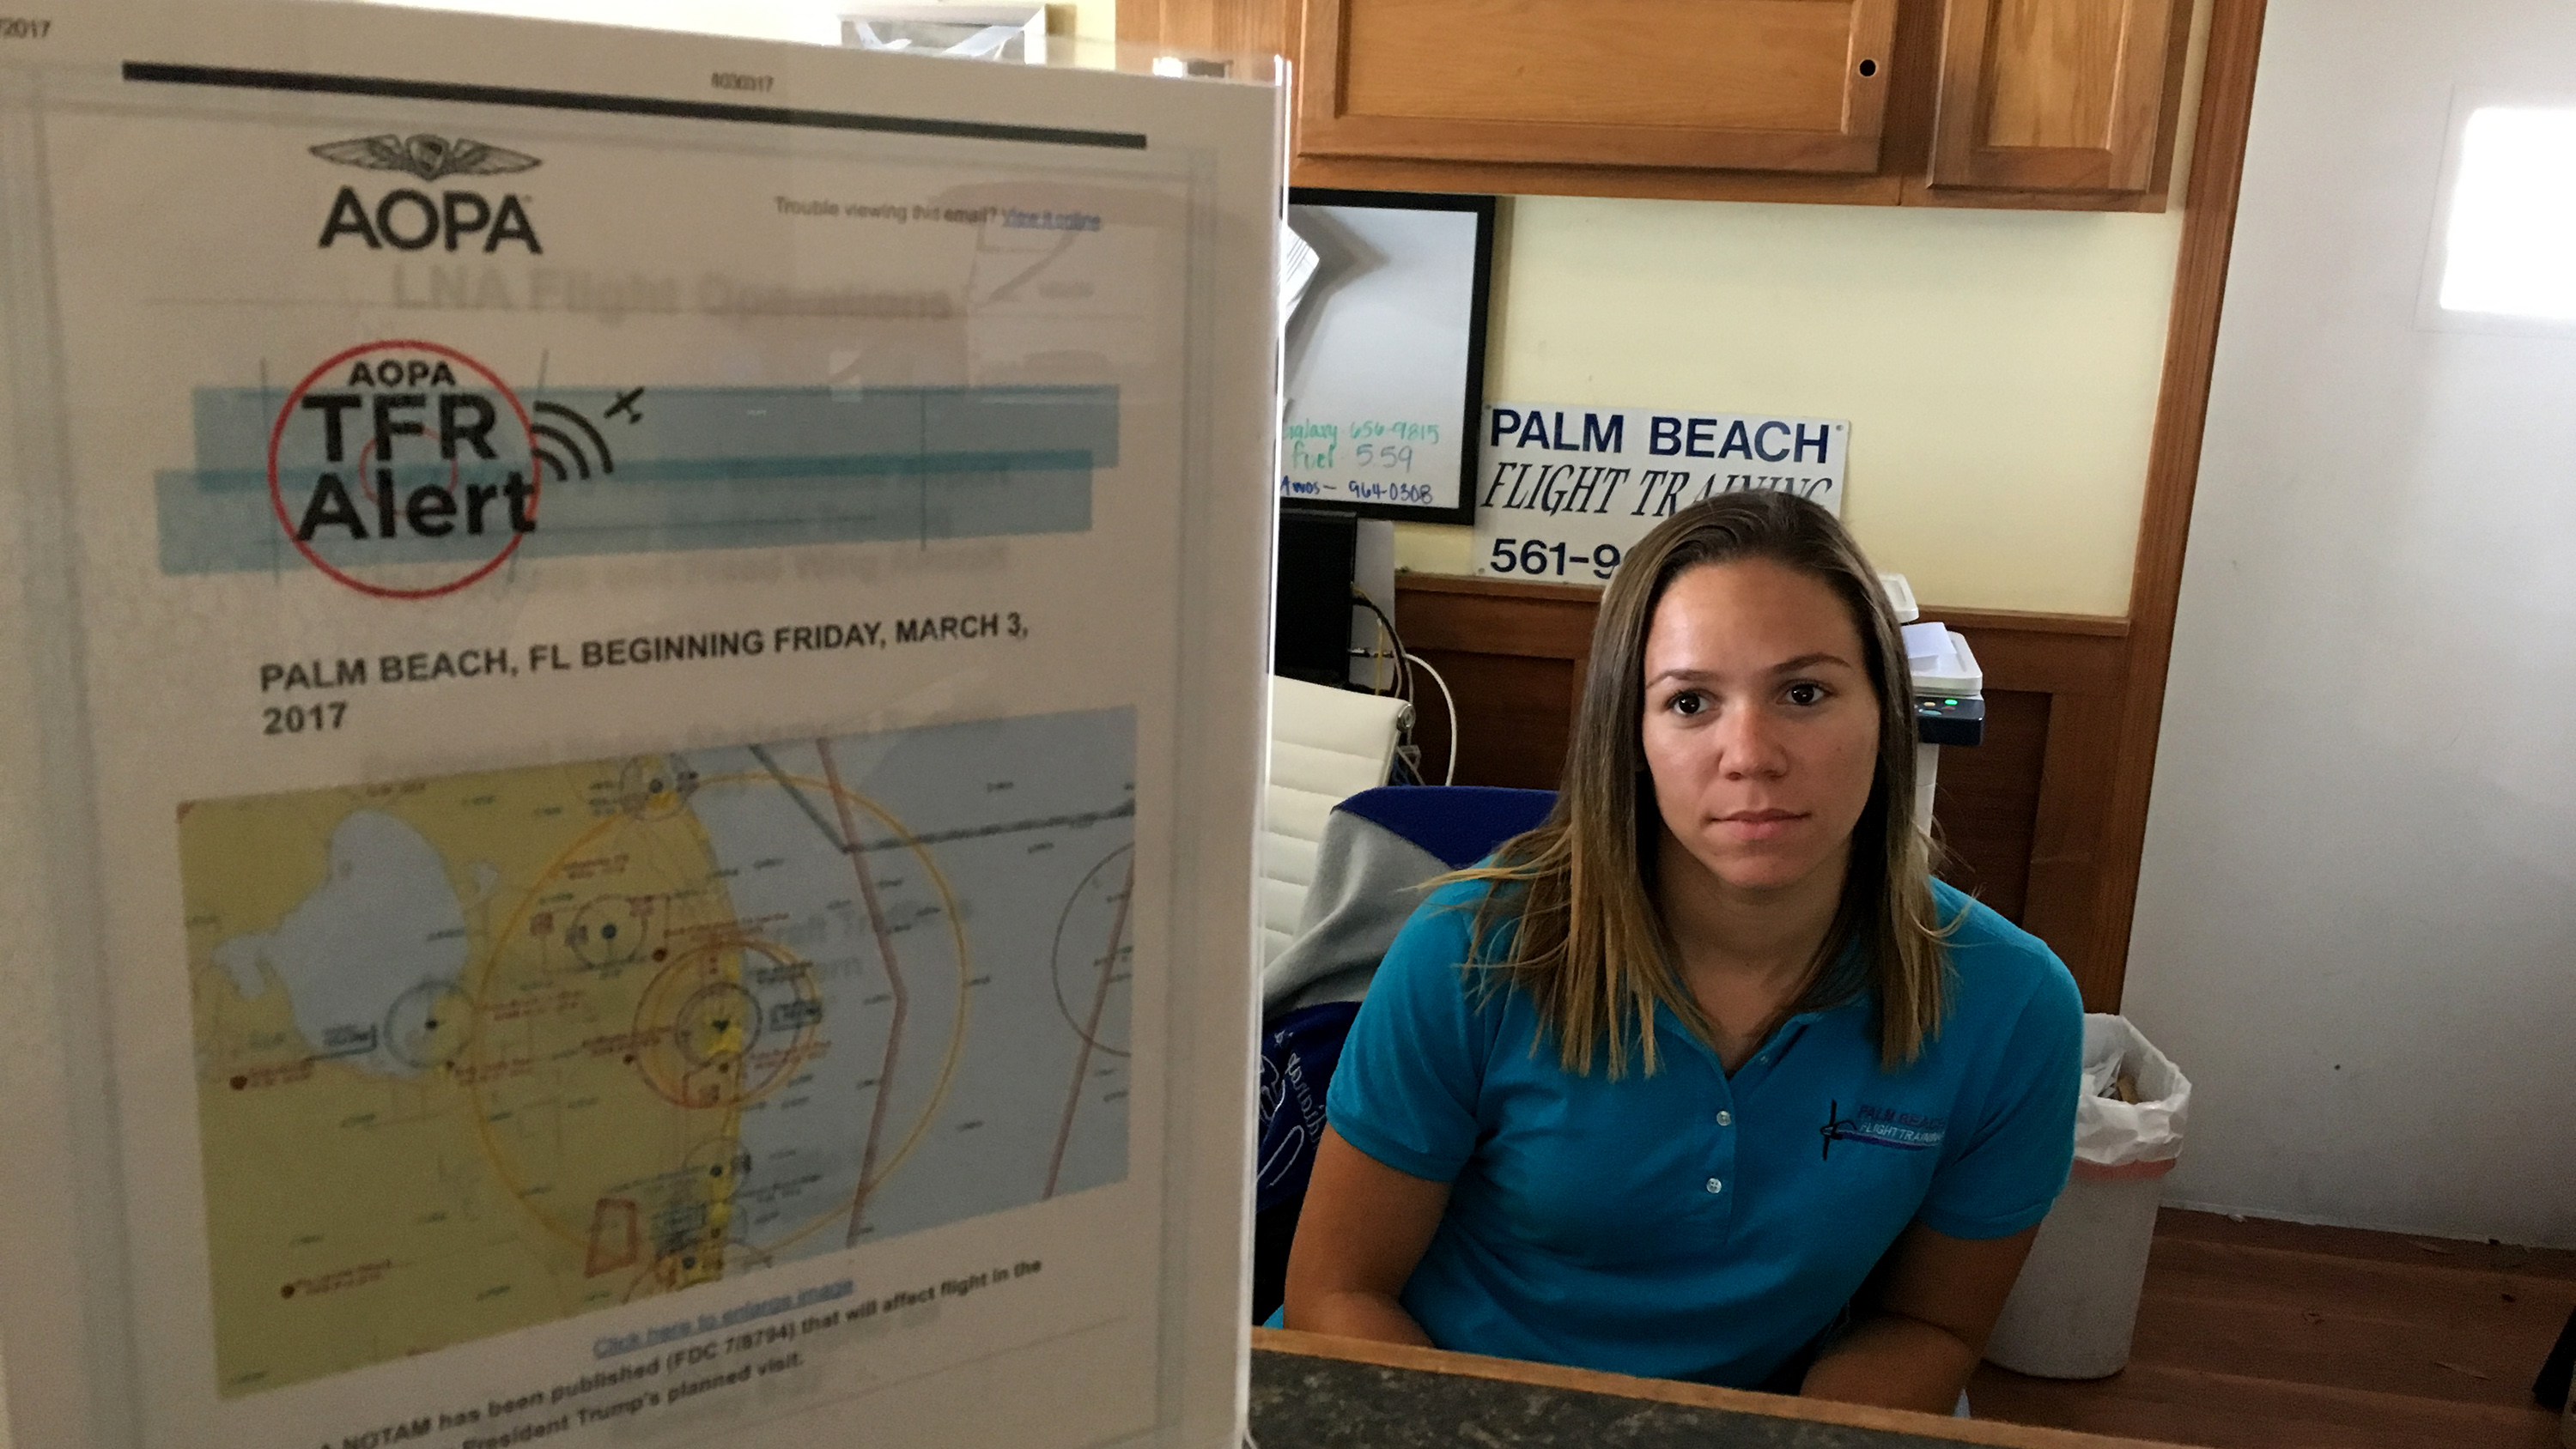 Palm Beach Flight Training Office Manager Michelle Edwards endures slow days at the flight school when presidential TFRs shut down Lantana Airport. Photo courtesy of Palm Beach Flight Training.